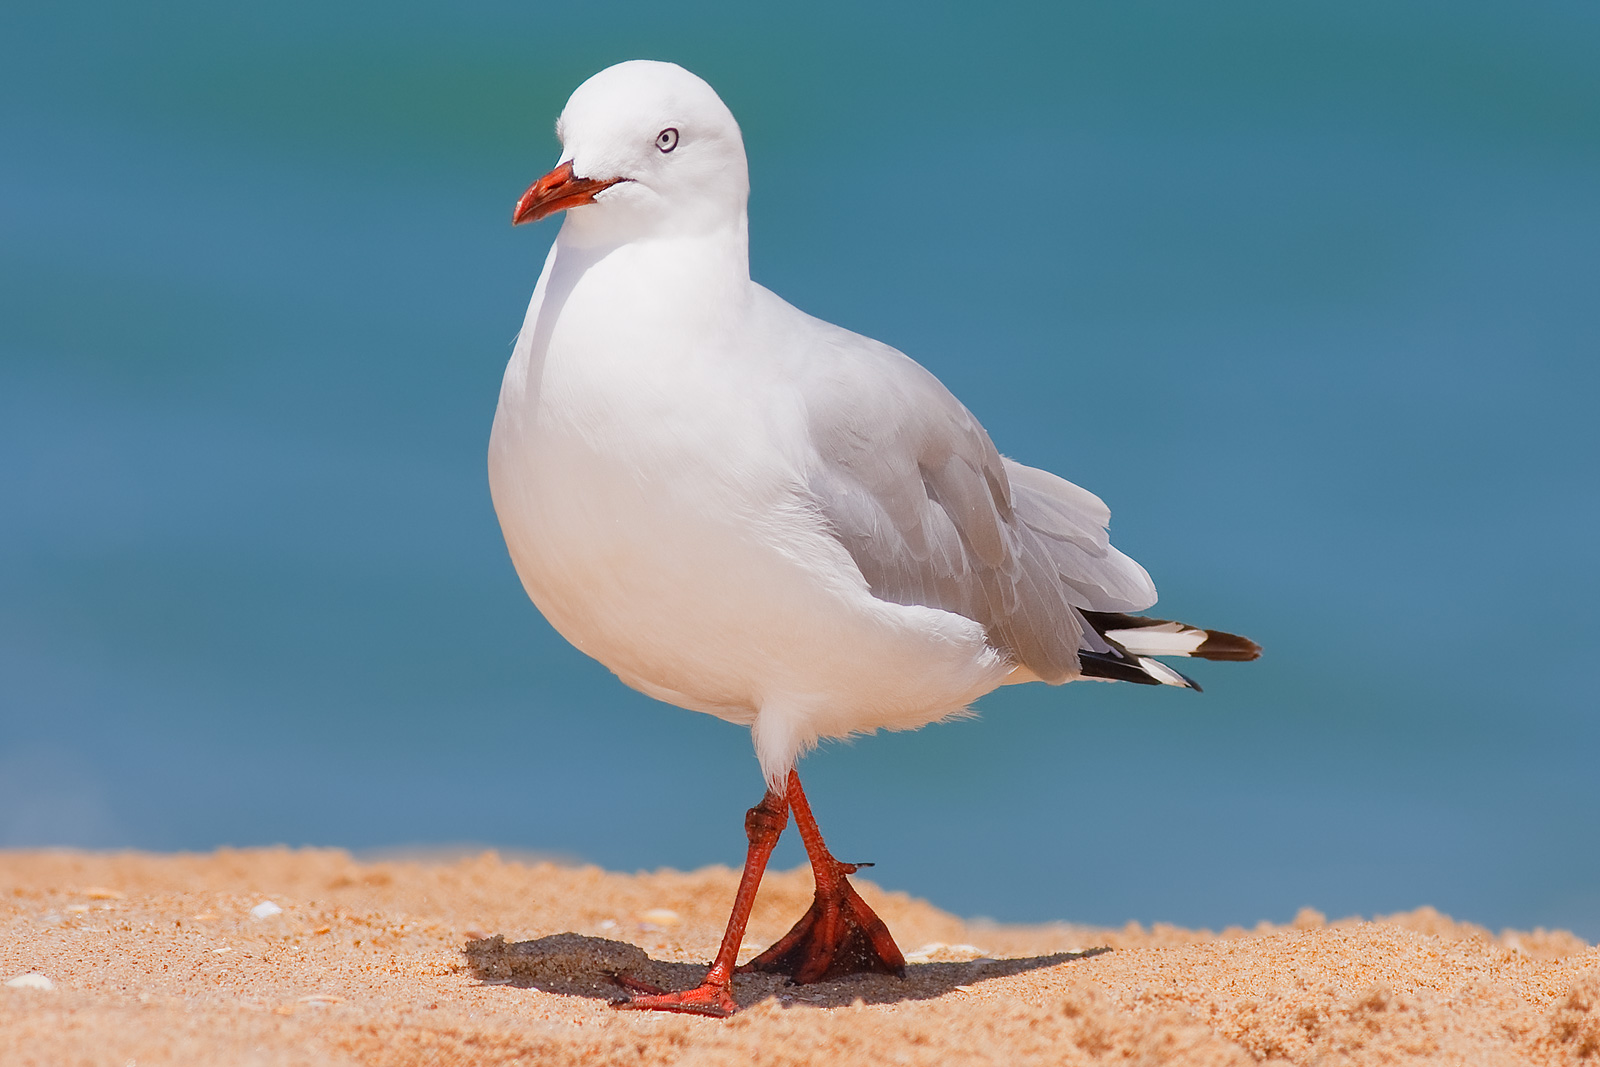 The Seagull images